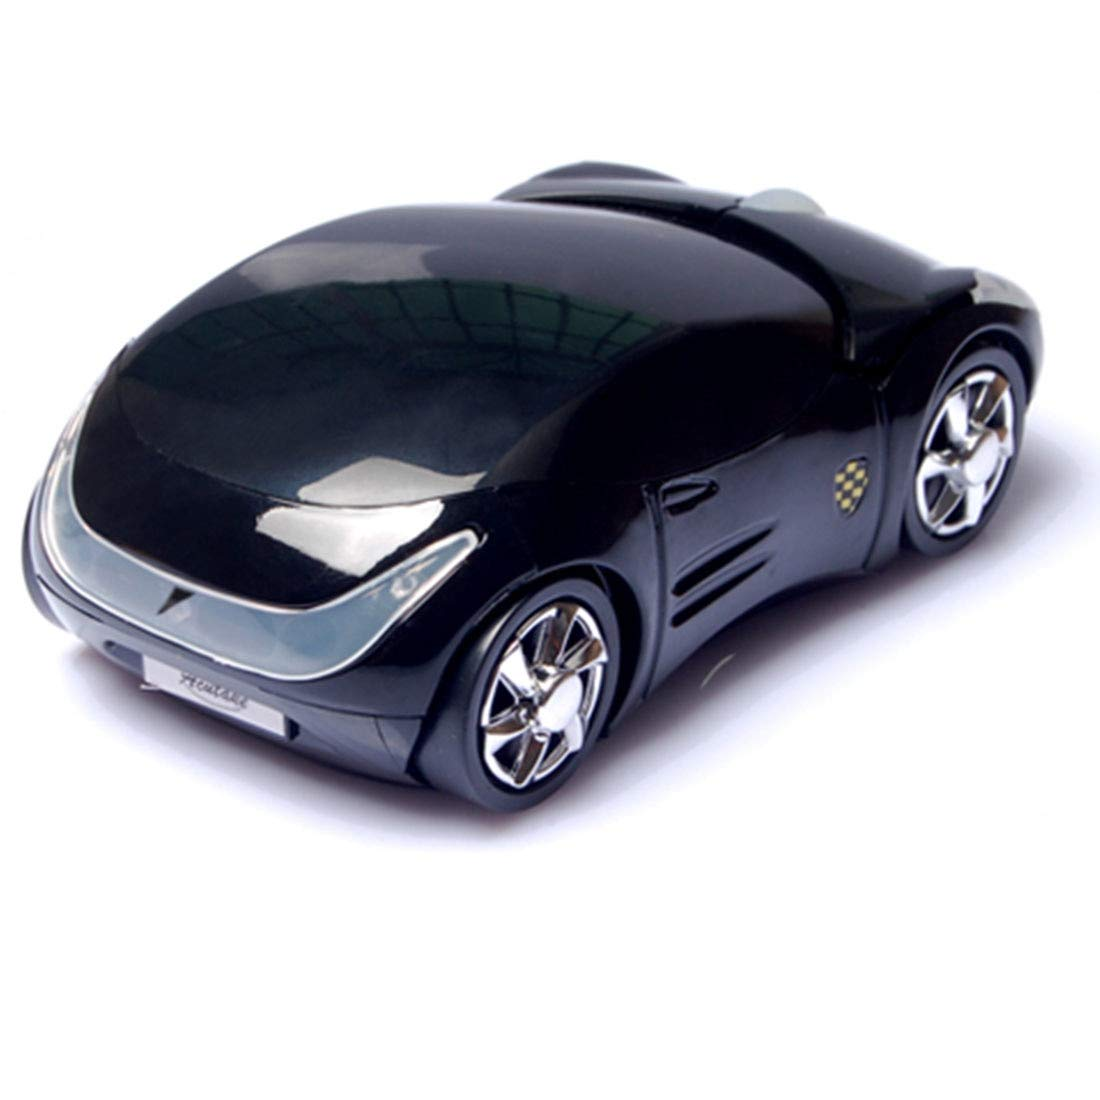 LILIERS 1600DPI Mini Car Shape Wired Mouse Computer Mice Fashion Super Game Mice 2.4Ghz Optical Mouse for PC